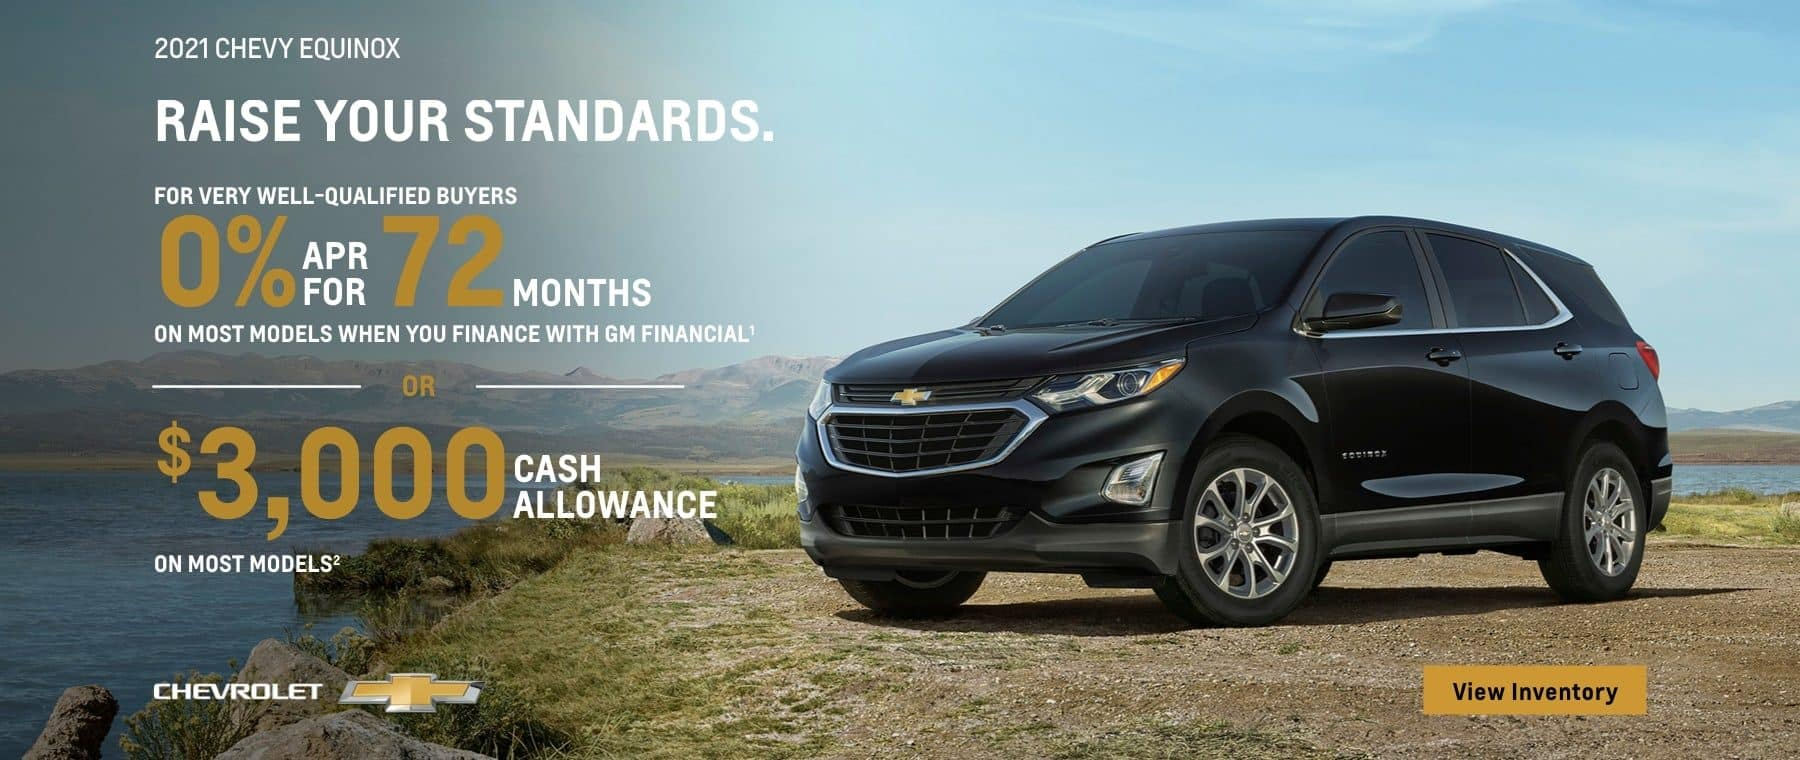 2021 Chevy Equinox. A high standard of safety. For very well-qualified buyers 0% APR for 72 months on most models when you finance with GM Financial. Or, $3,000 cash allowance on most models.